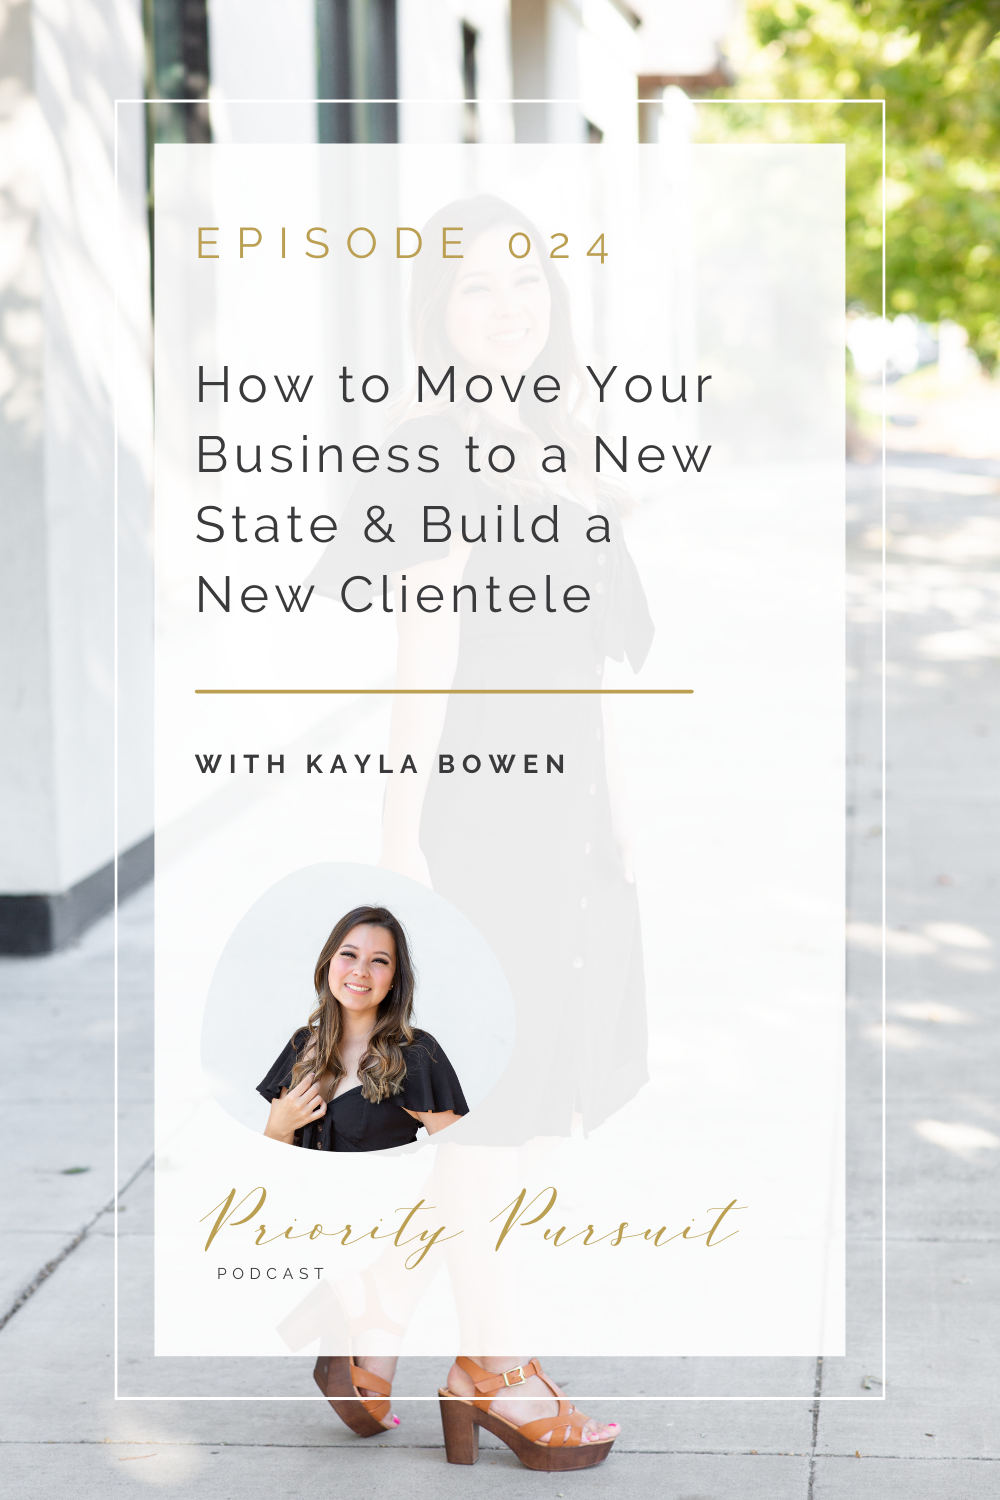 Victoria Rayburn and Kayla Bowen discuss how to move and rebuild your business in a new location.